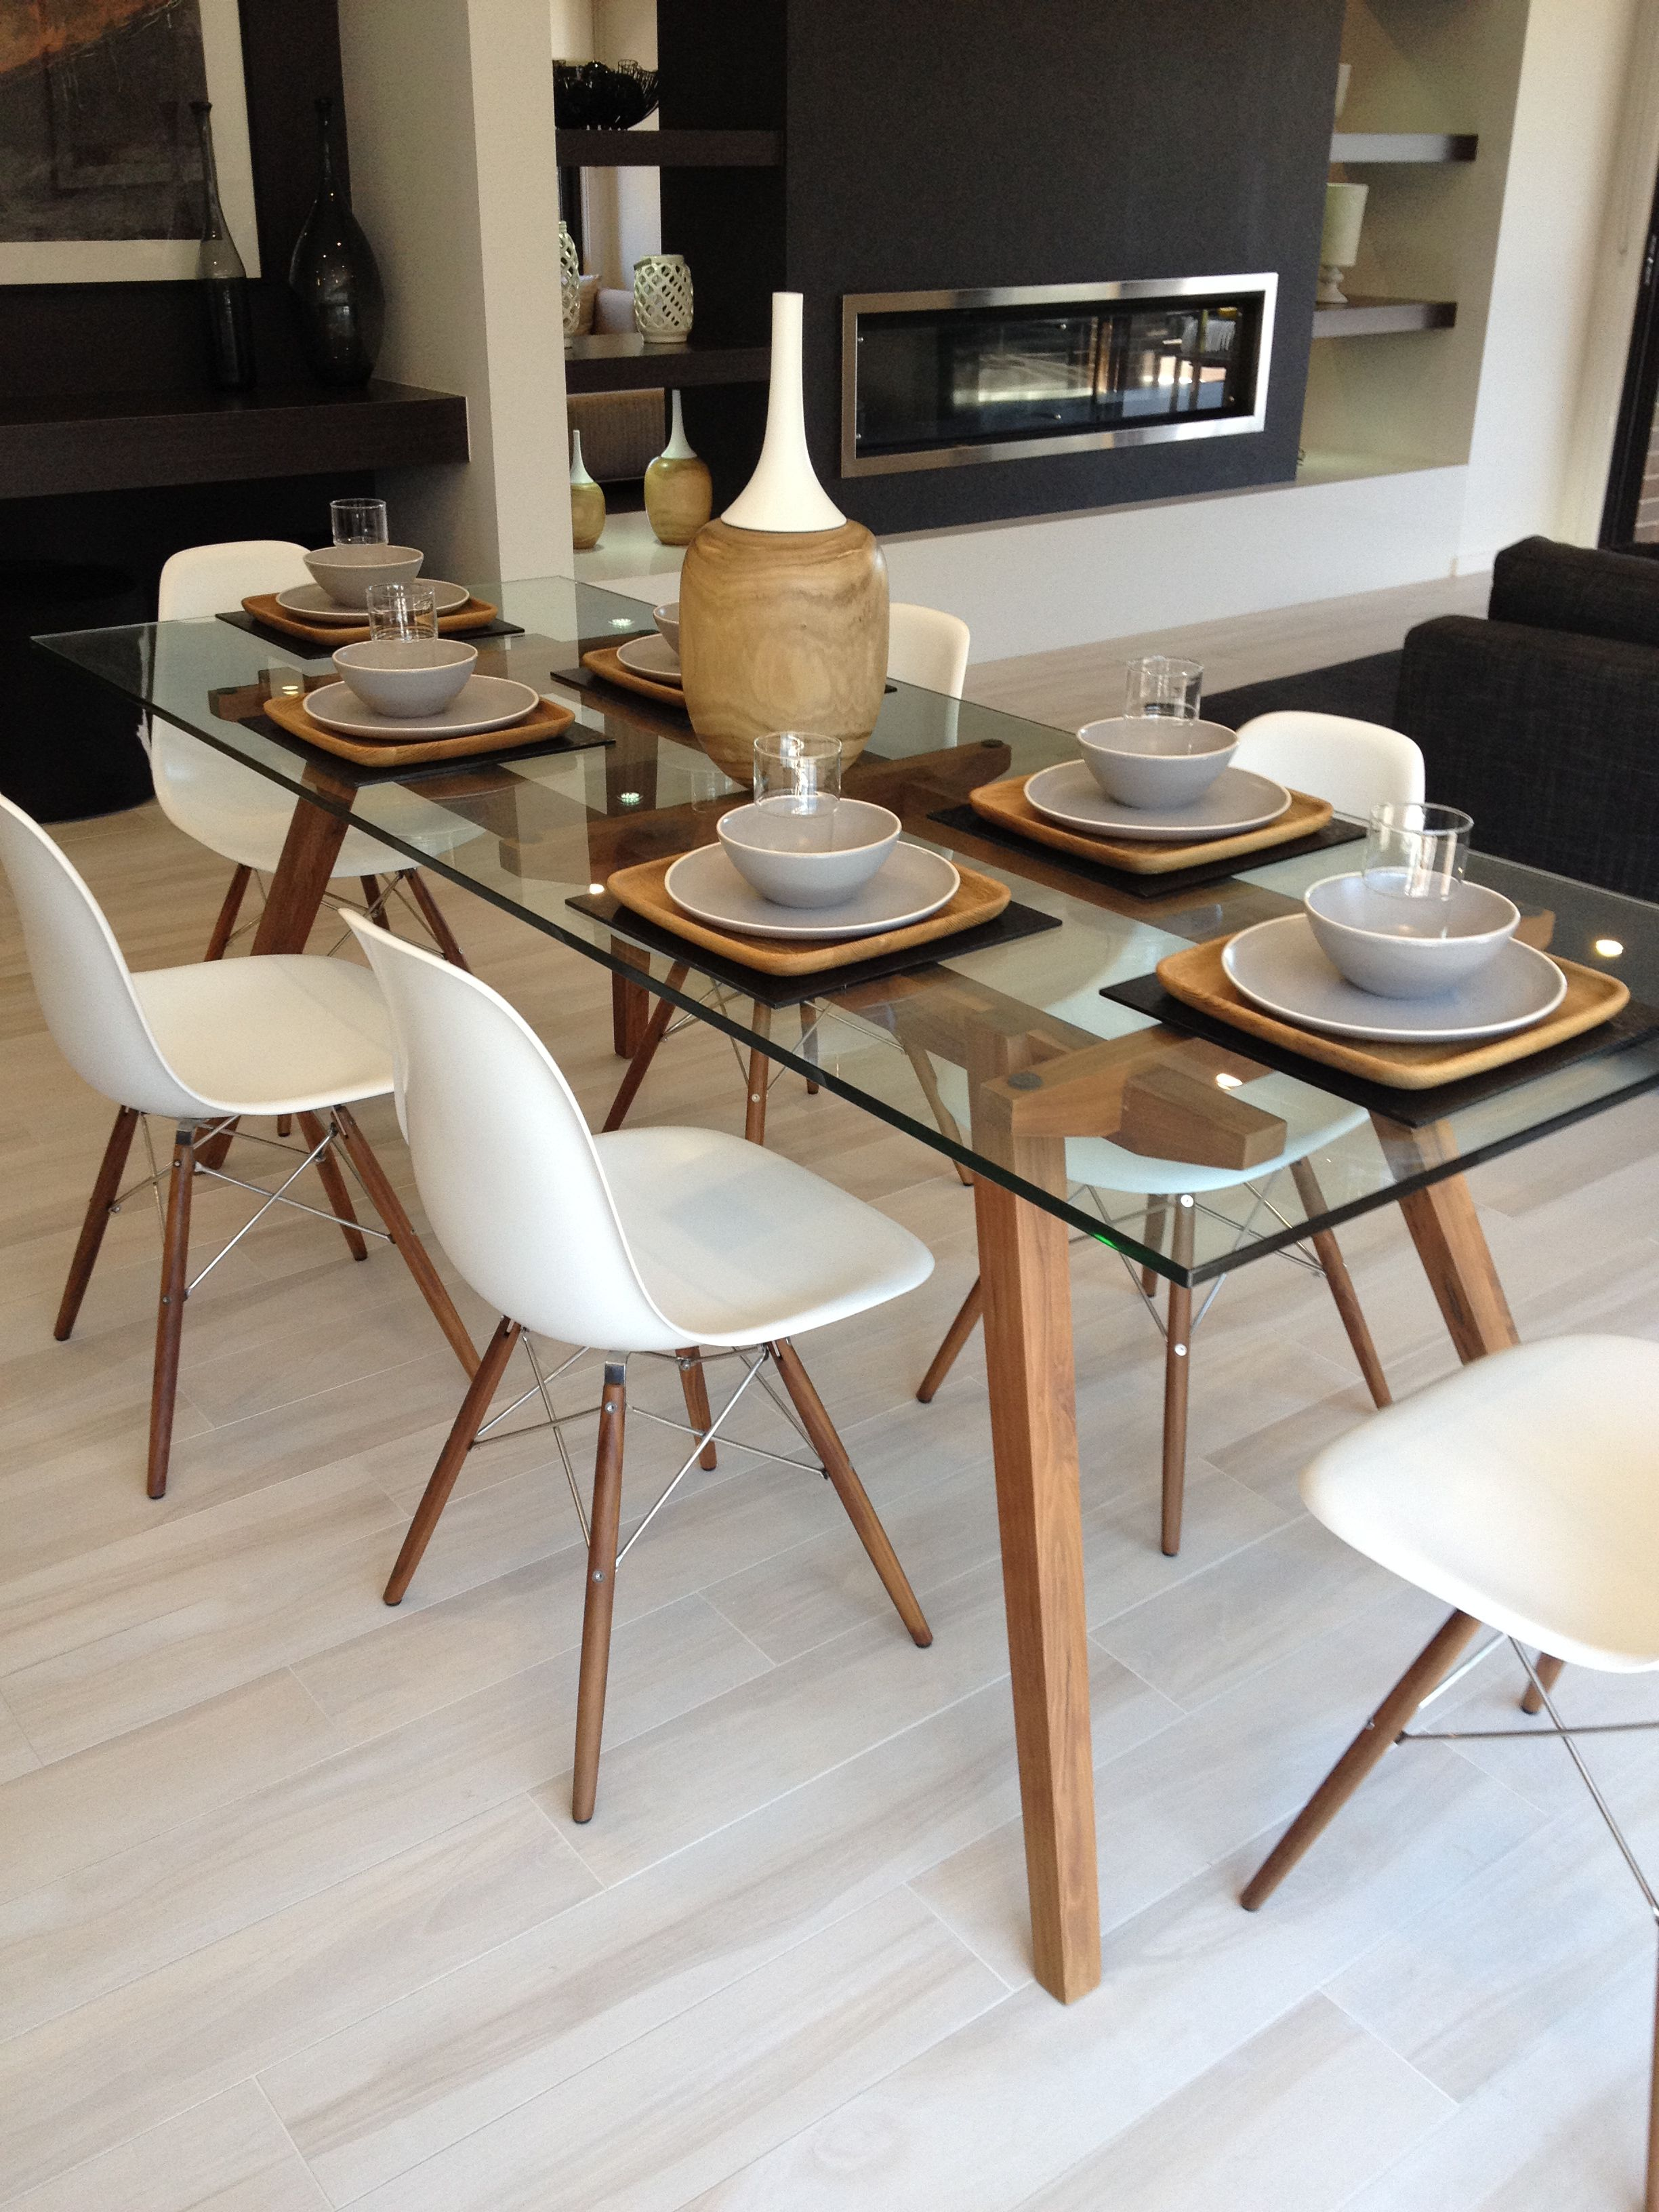 Gentil Sticotti Glass Dining Table And Eames Dining Chairs In Walnut